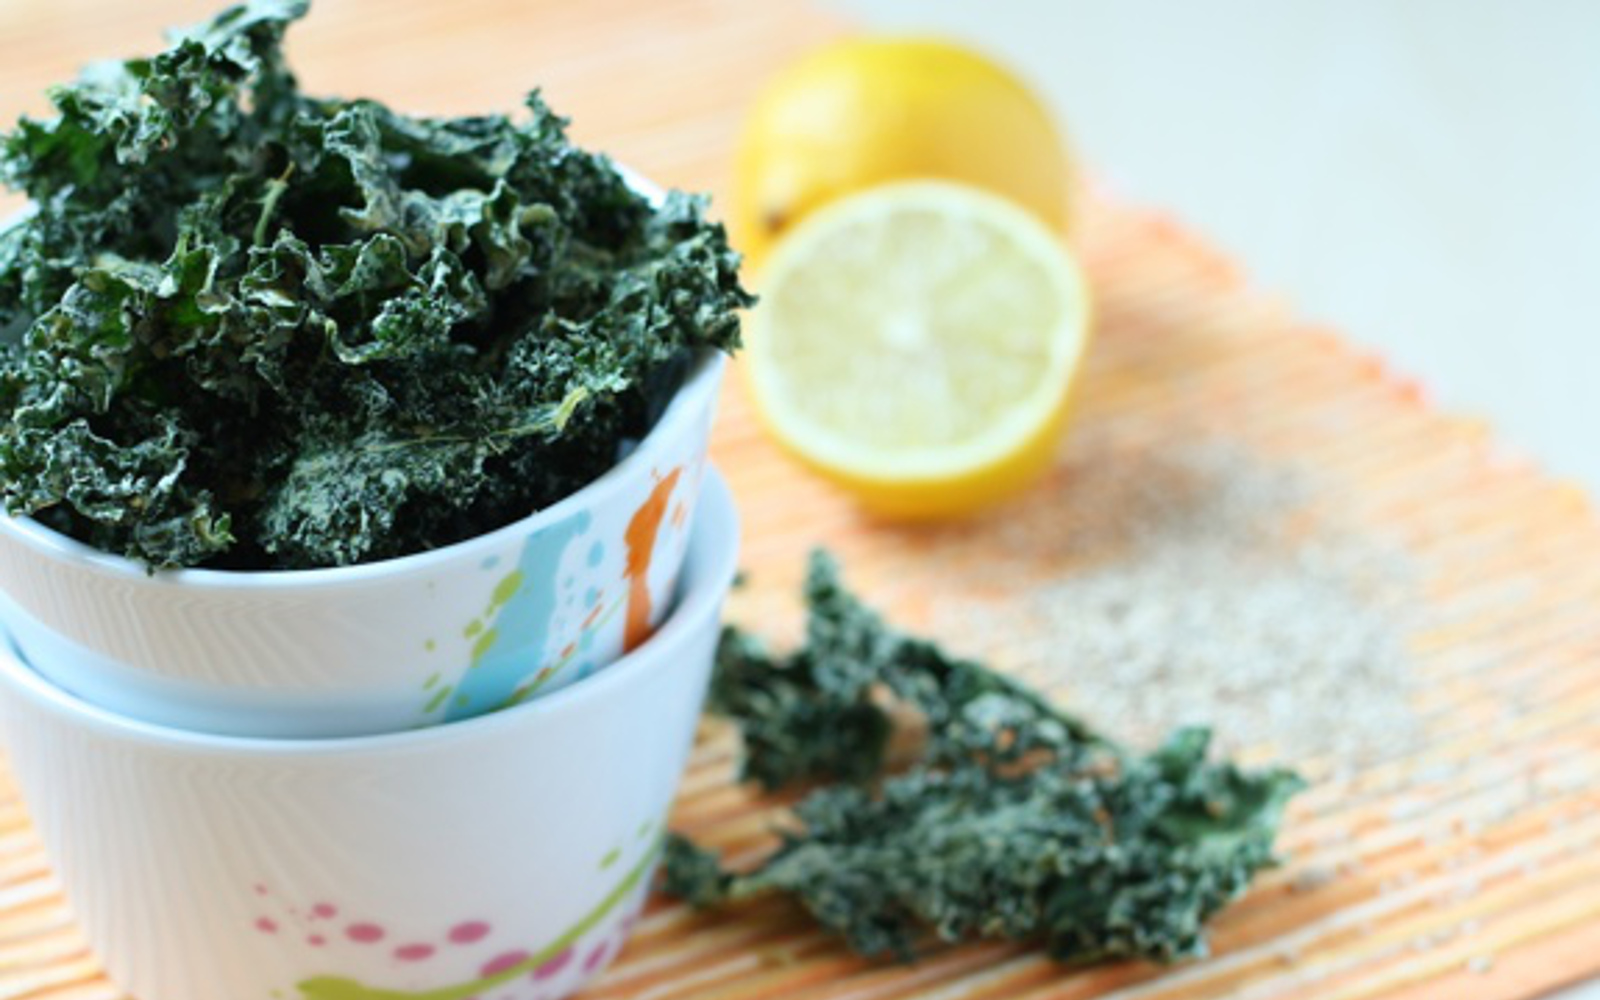 Raw Vegan Gluten-Free Soy-Free Nut-Free Oil-Free Lemon Tahini Kale Chips